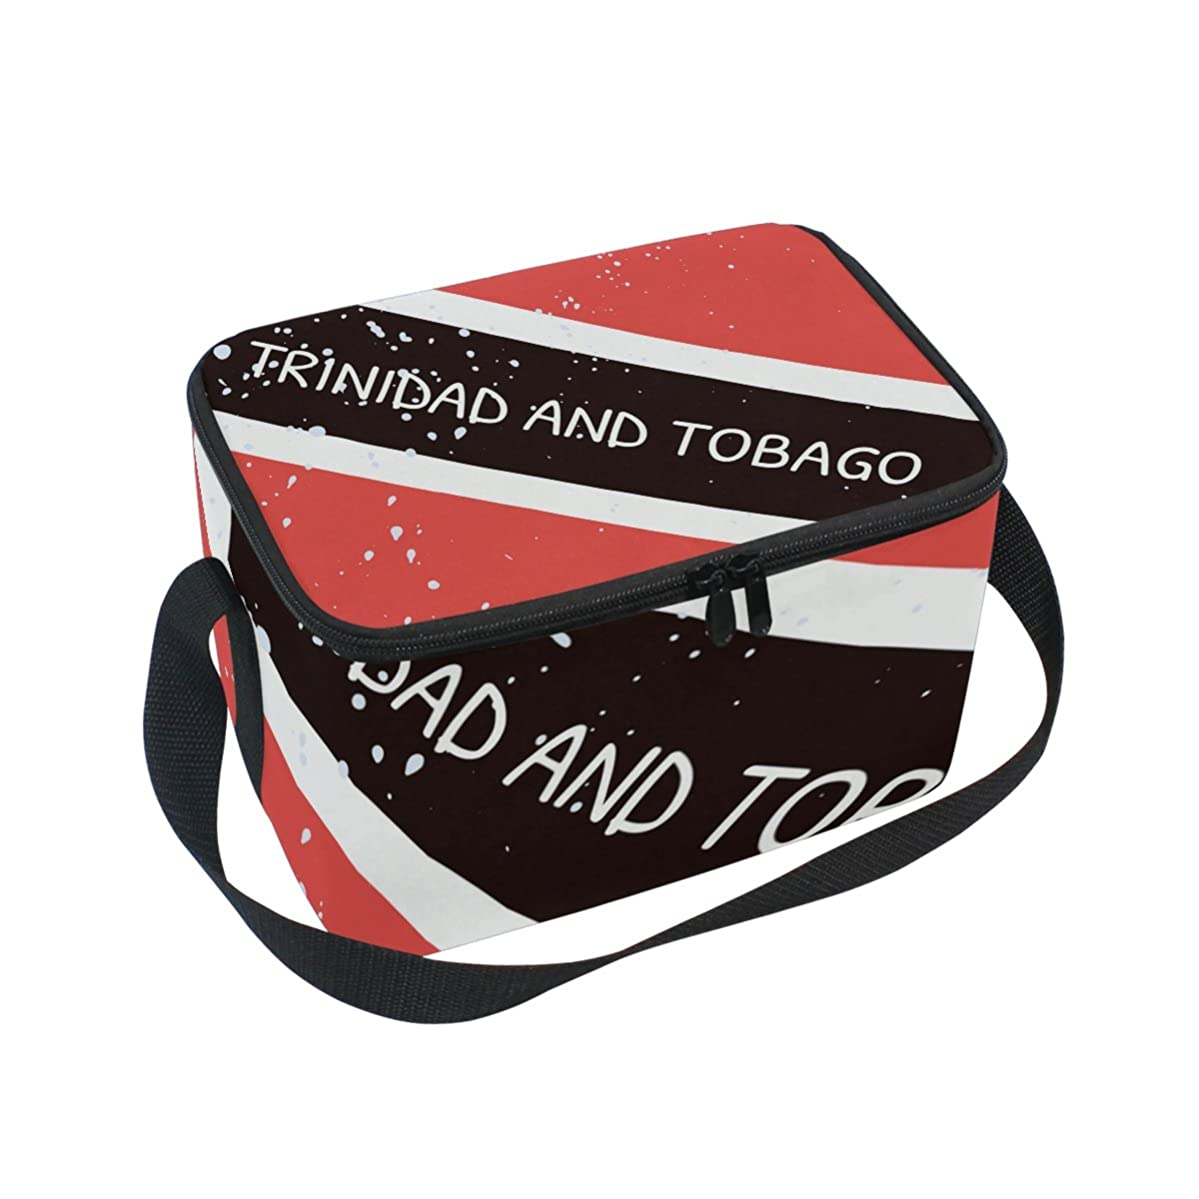 Distressed Trinidad And Tobago Flag Insulated Lunch Box Cooler Bag Reusable Tote Picnic Bags for Travel, Camping, Hiking and RVing